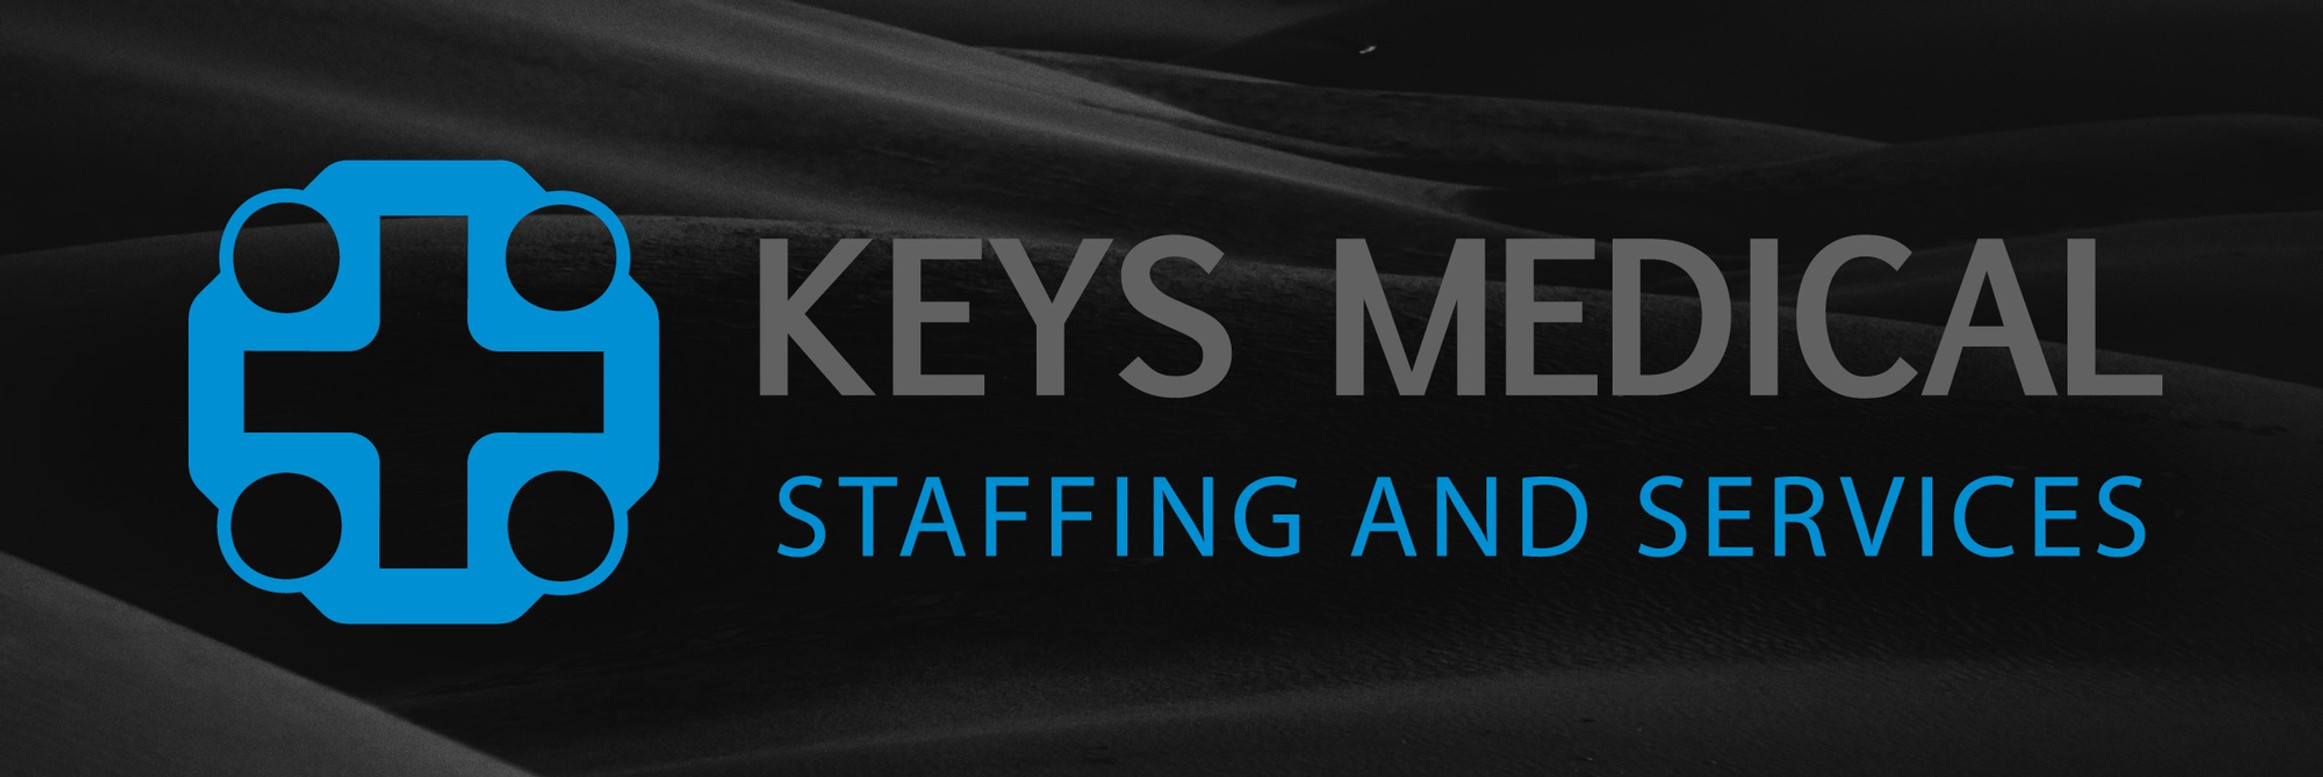 Key Medical Staffing and Services